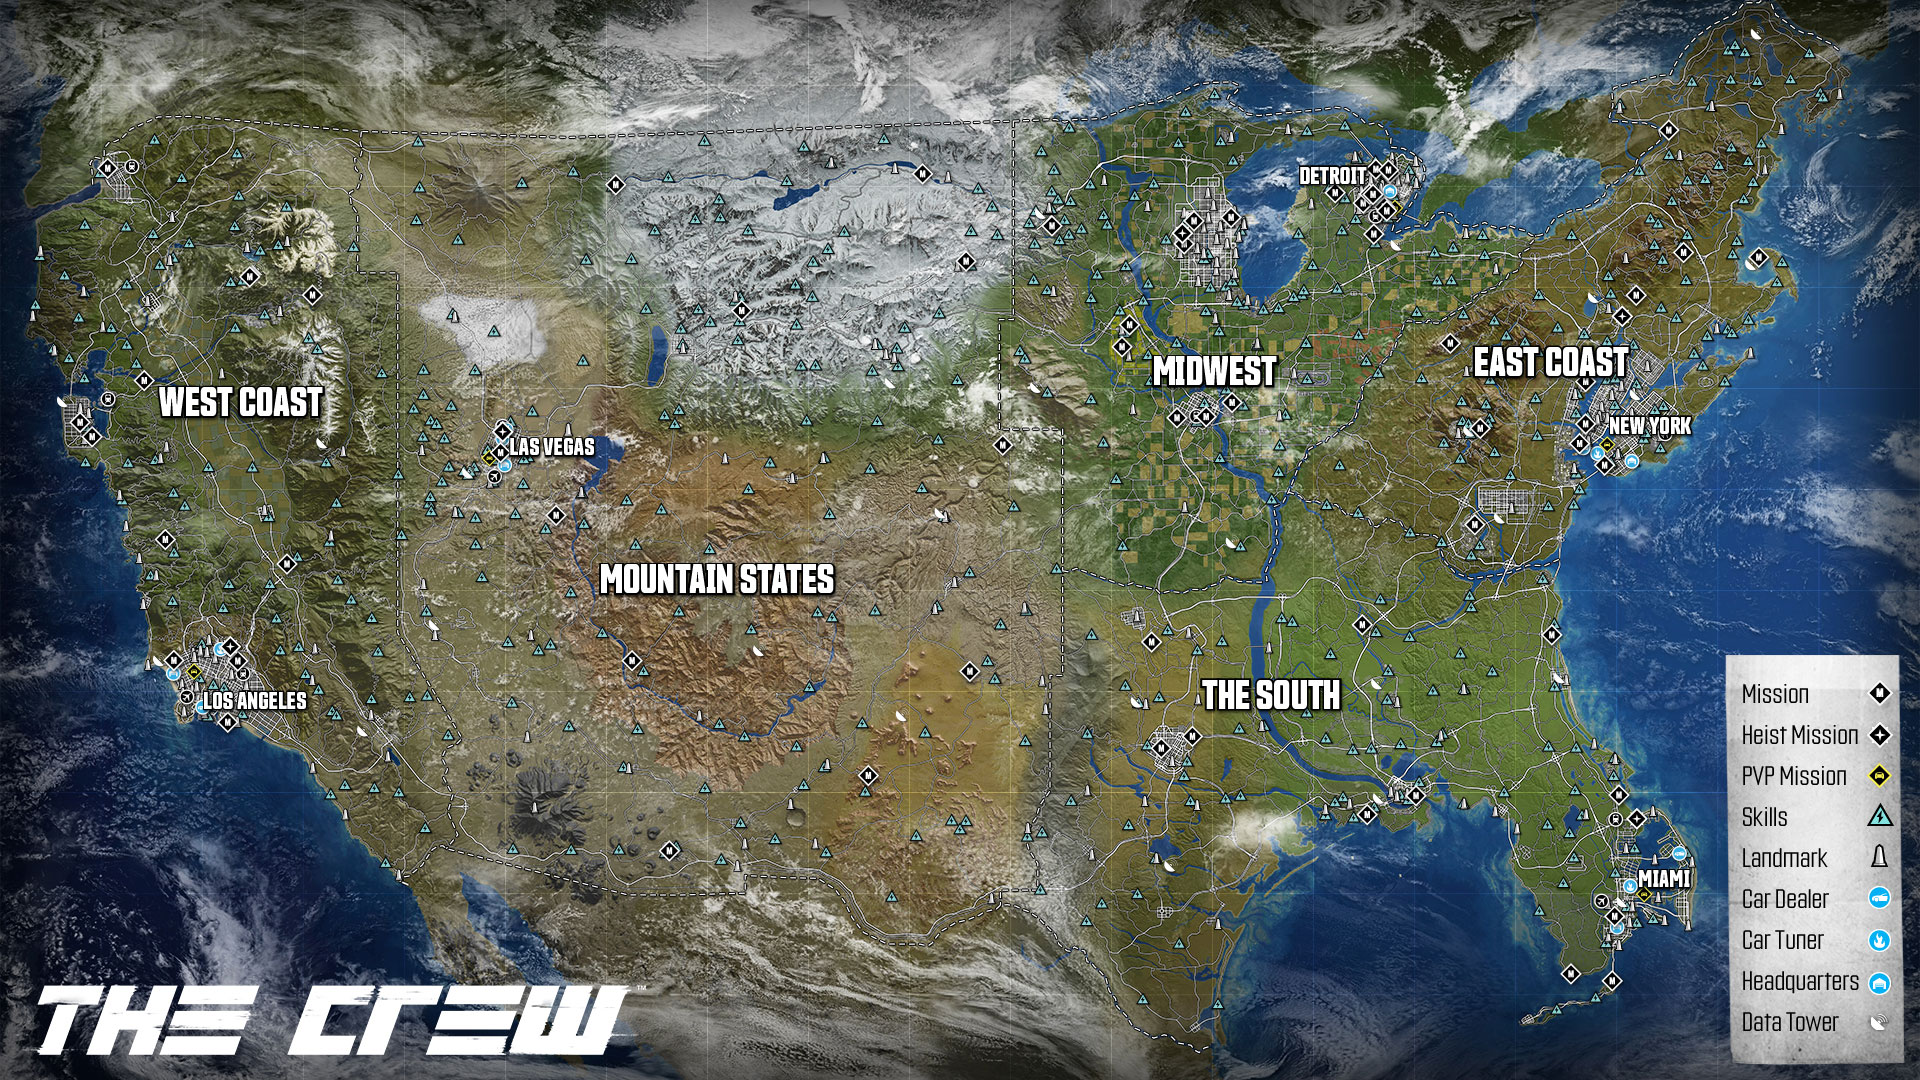 THECREW_Playground_Map_1920x1080_web